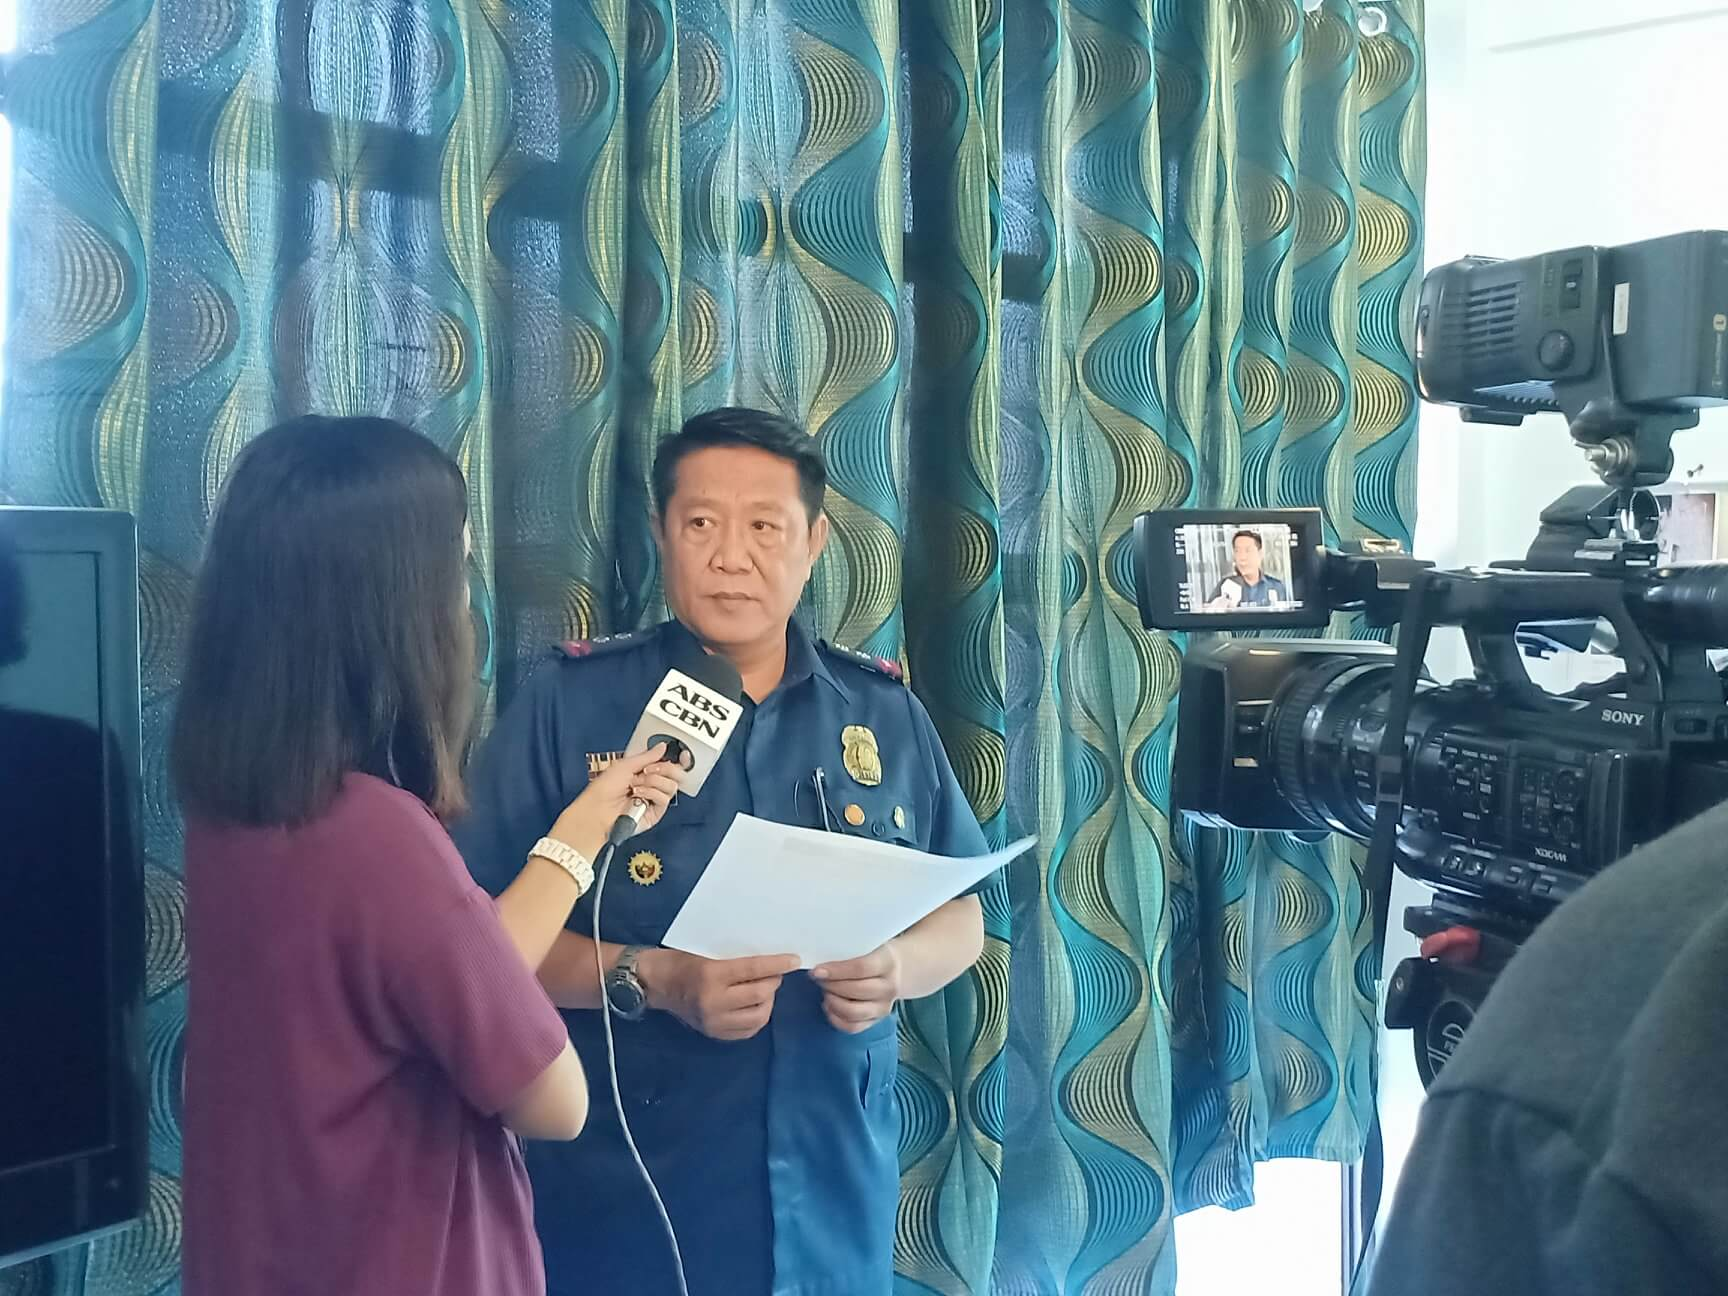 INTERVIEW ABOUT THE ANTI-ILLEGAL DRUG OPERATION